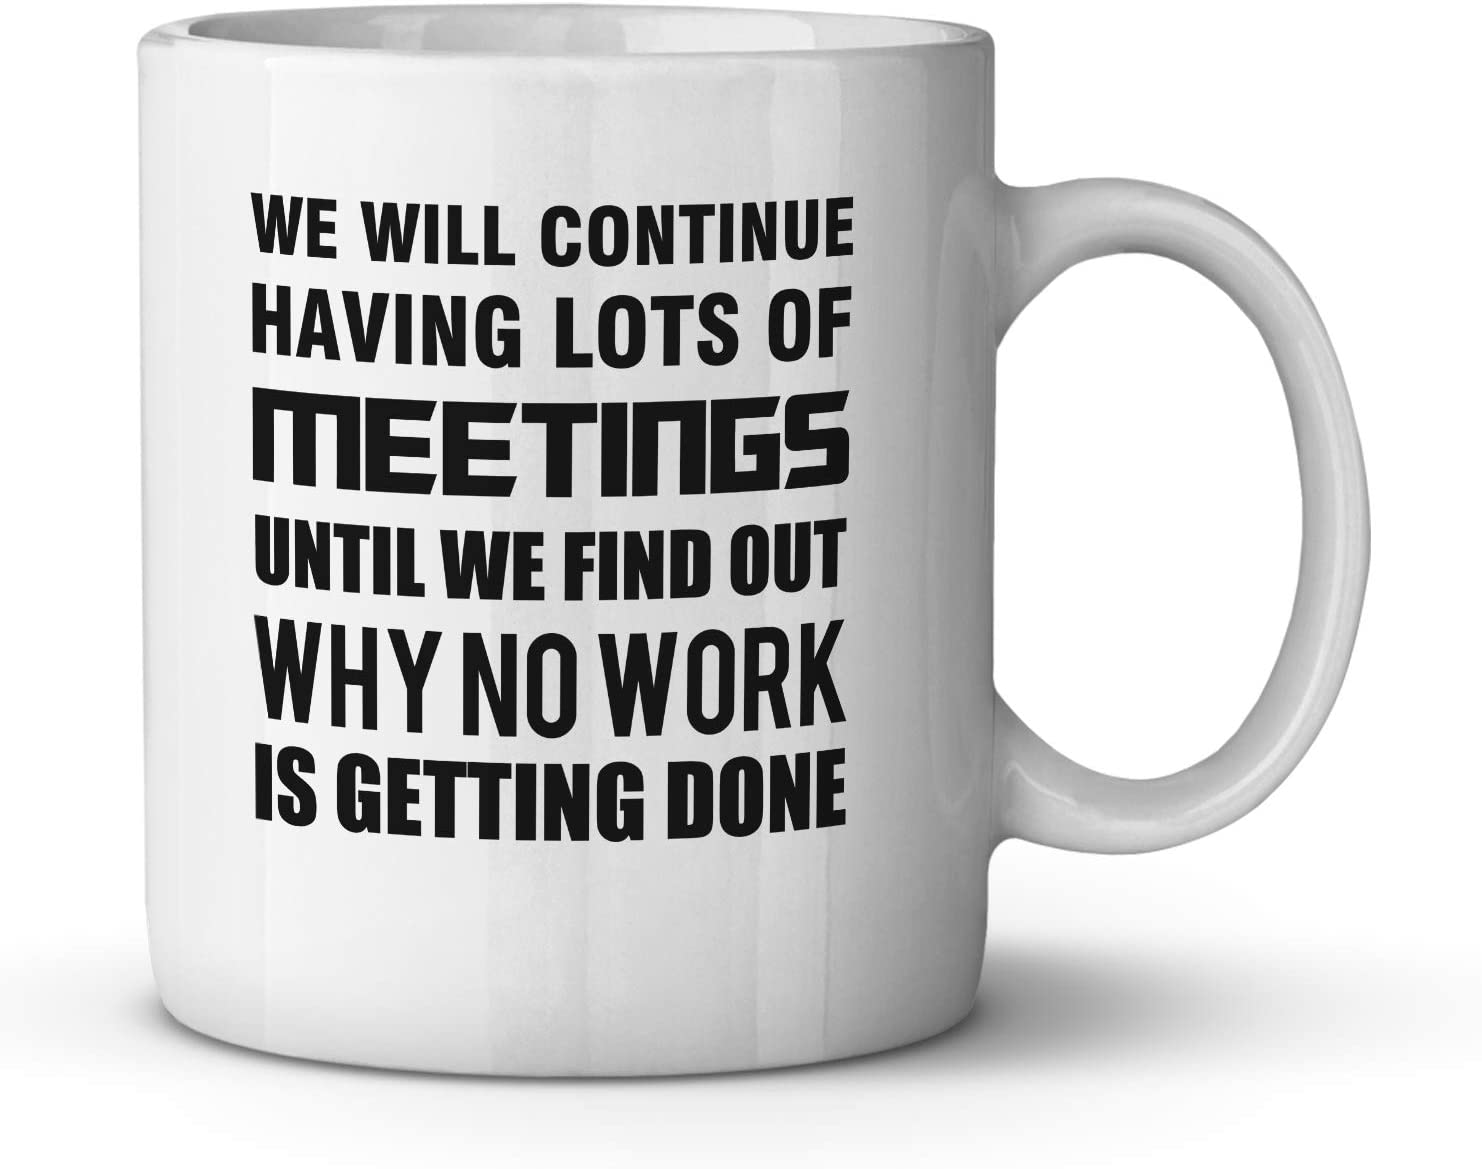 We Will Continue Having Lots of Meetings Until We Find Out Why No Work is Getting Done Funny Ceramic Coffee Mug Gag Present for Colleague Co-worker Birthday Present Office Humor Tea Cup 11 oz